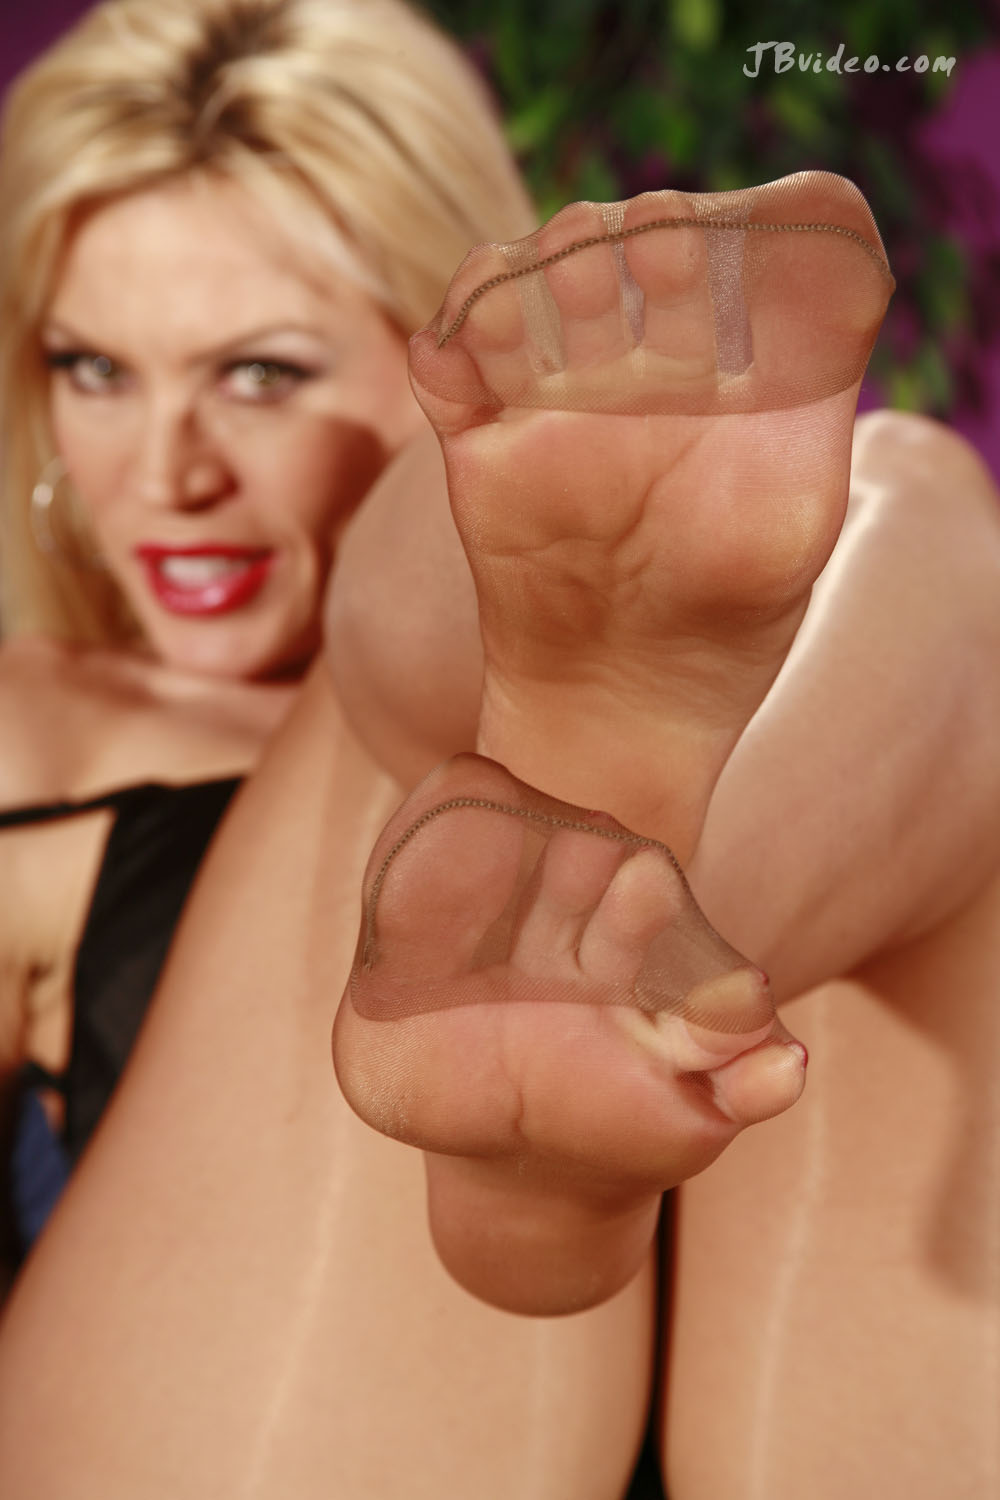 Similar. Nylon feet legs tease can suggest